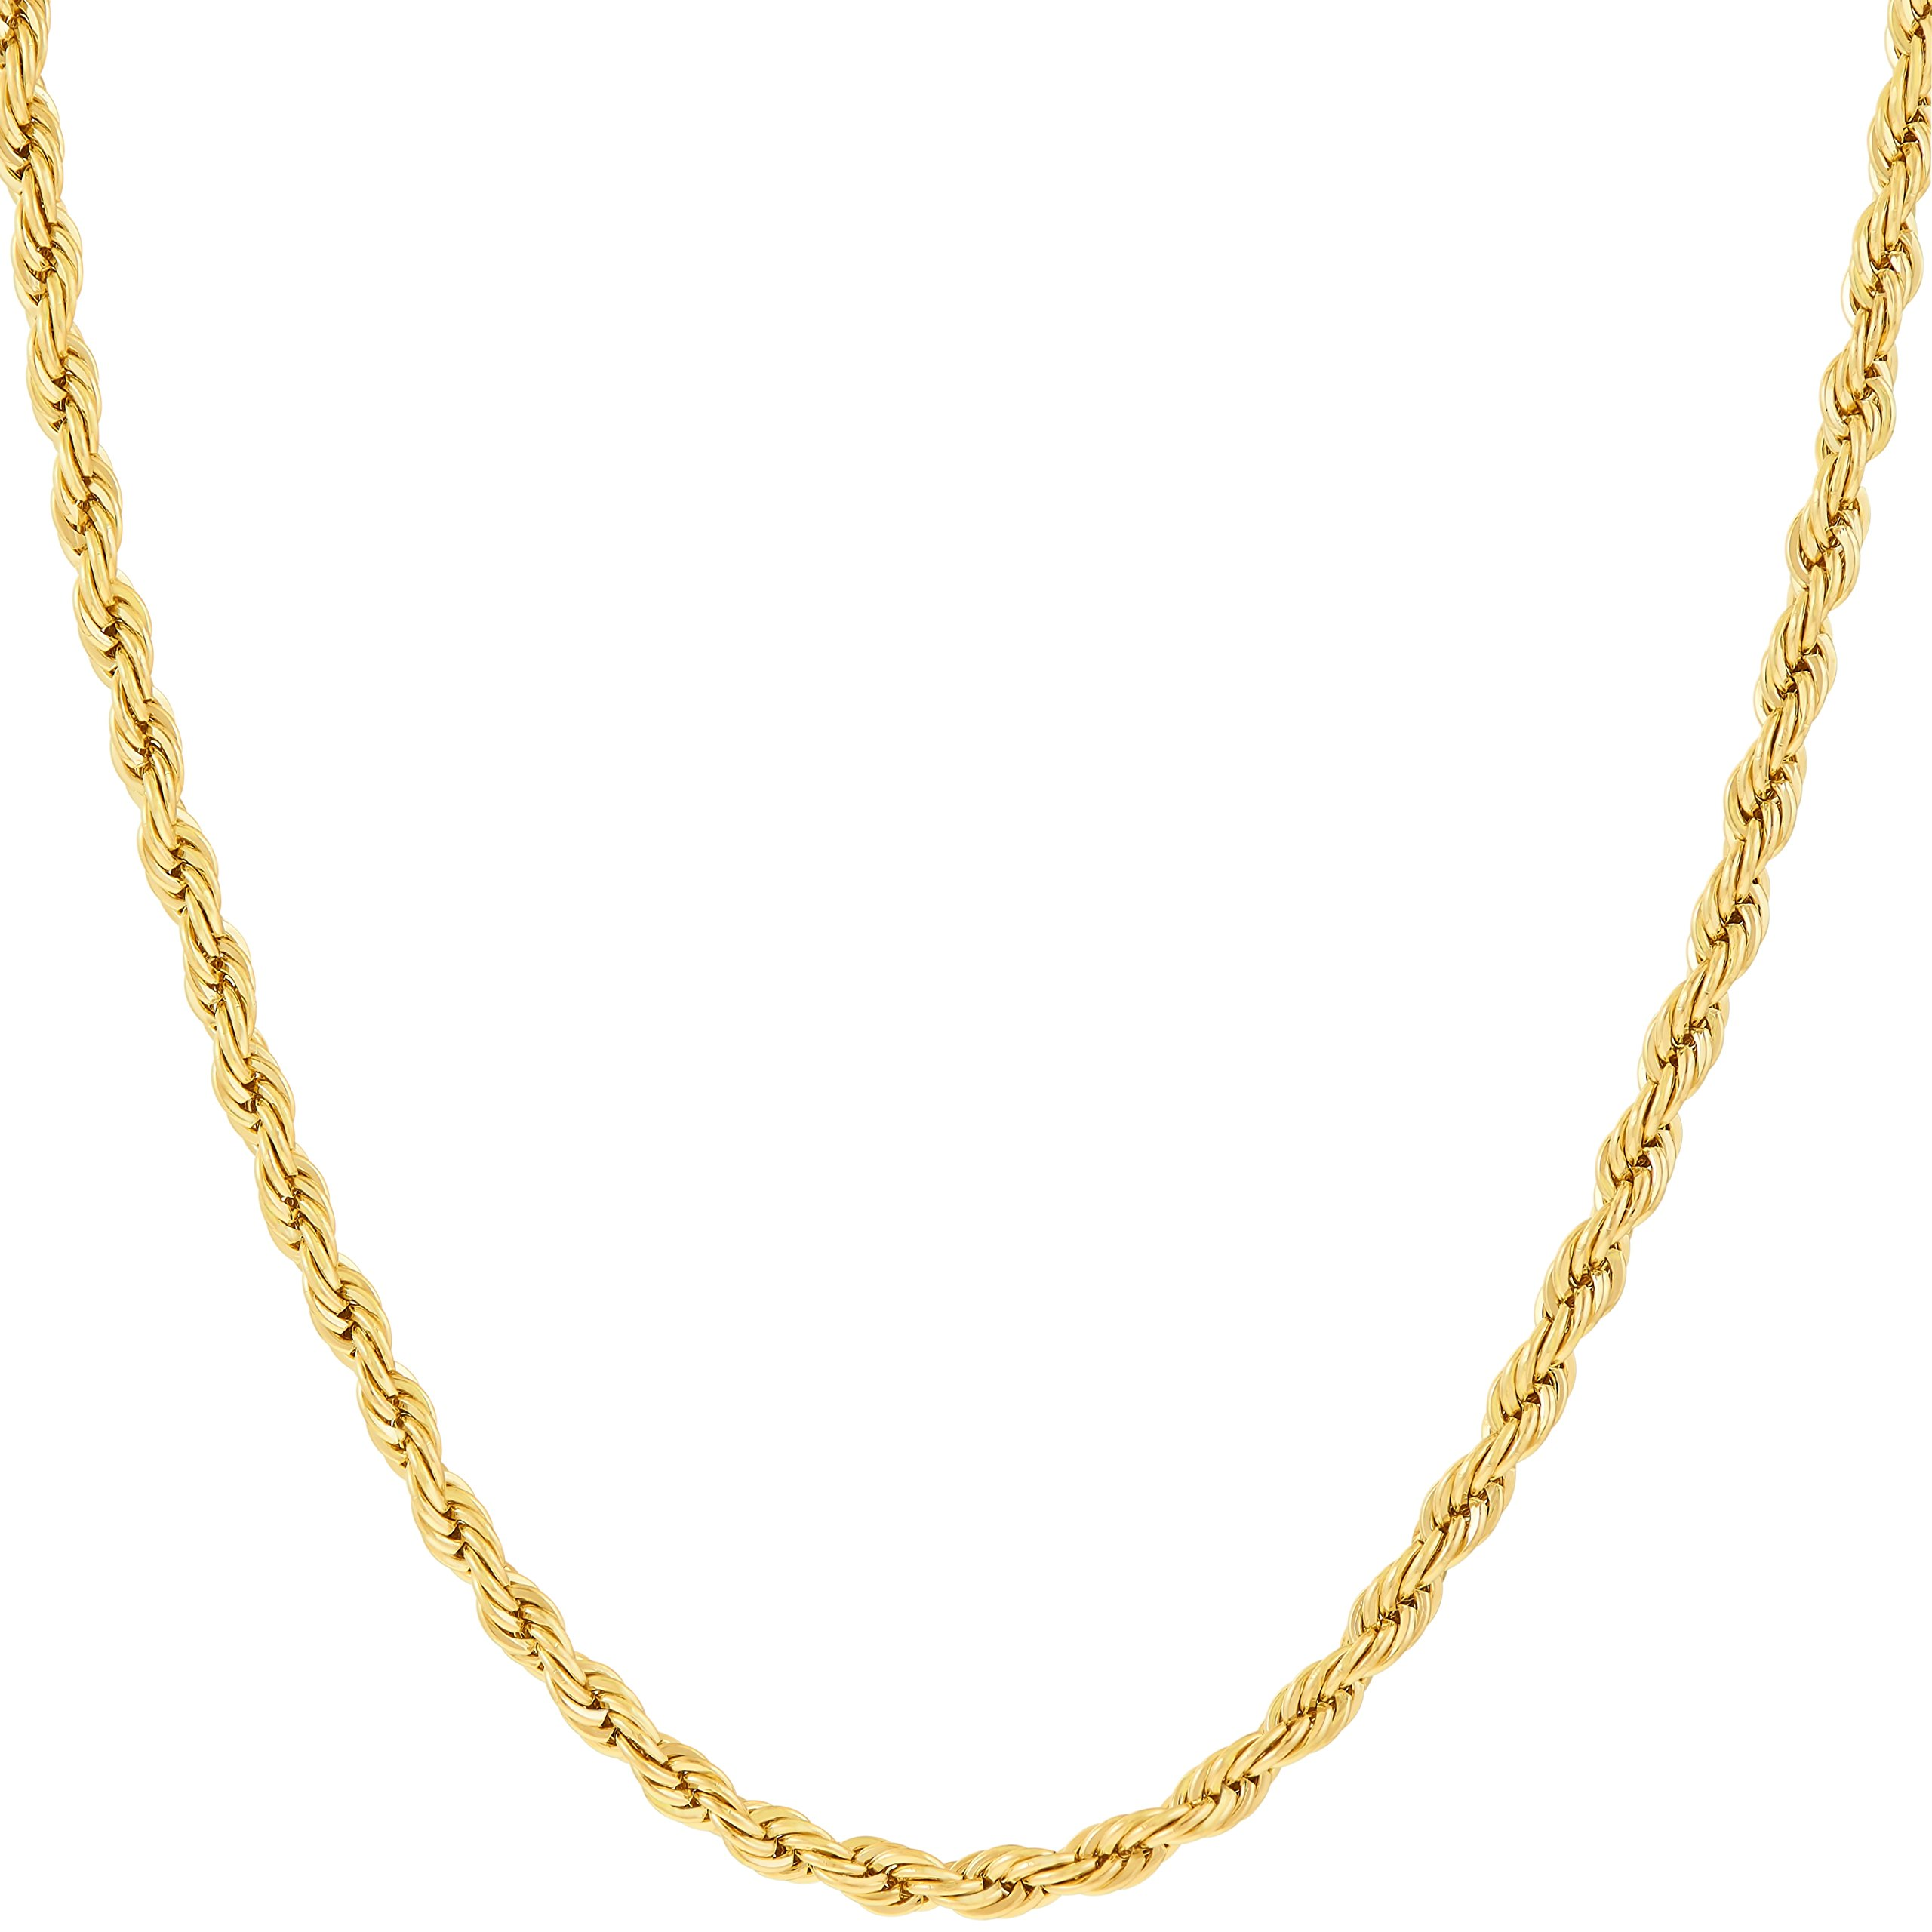 Lifetime Jewelry 2MM Rope Chain, 24K Gold with Inlaid Bronze, Premium Fashion Jewelry, Wear Alone or with Pendant, Guaranteed for Life, 20 Inches